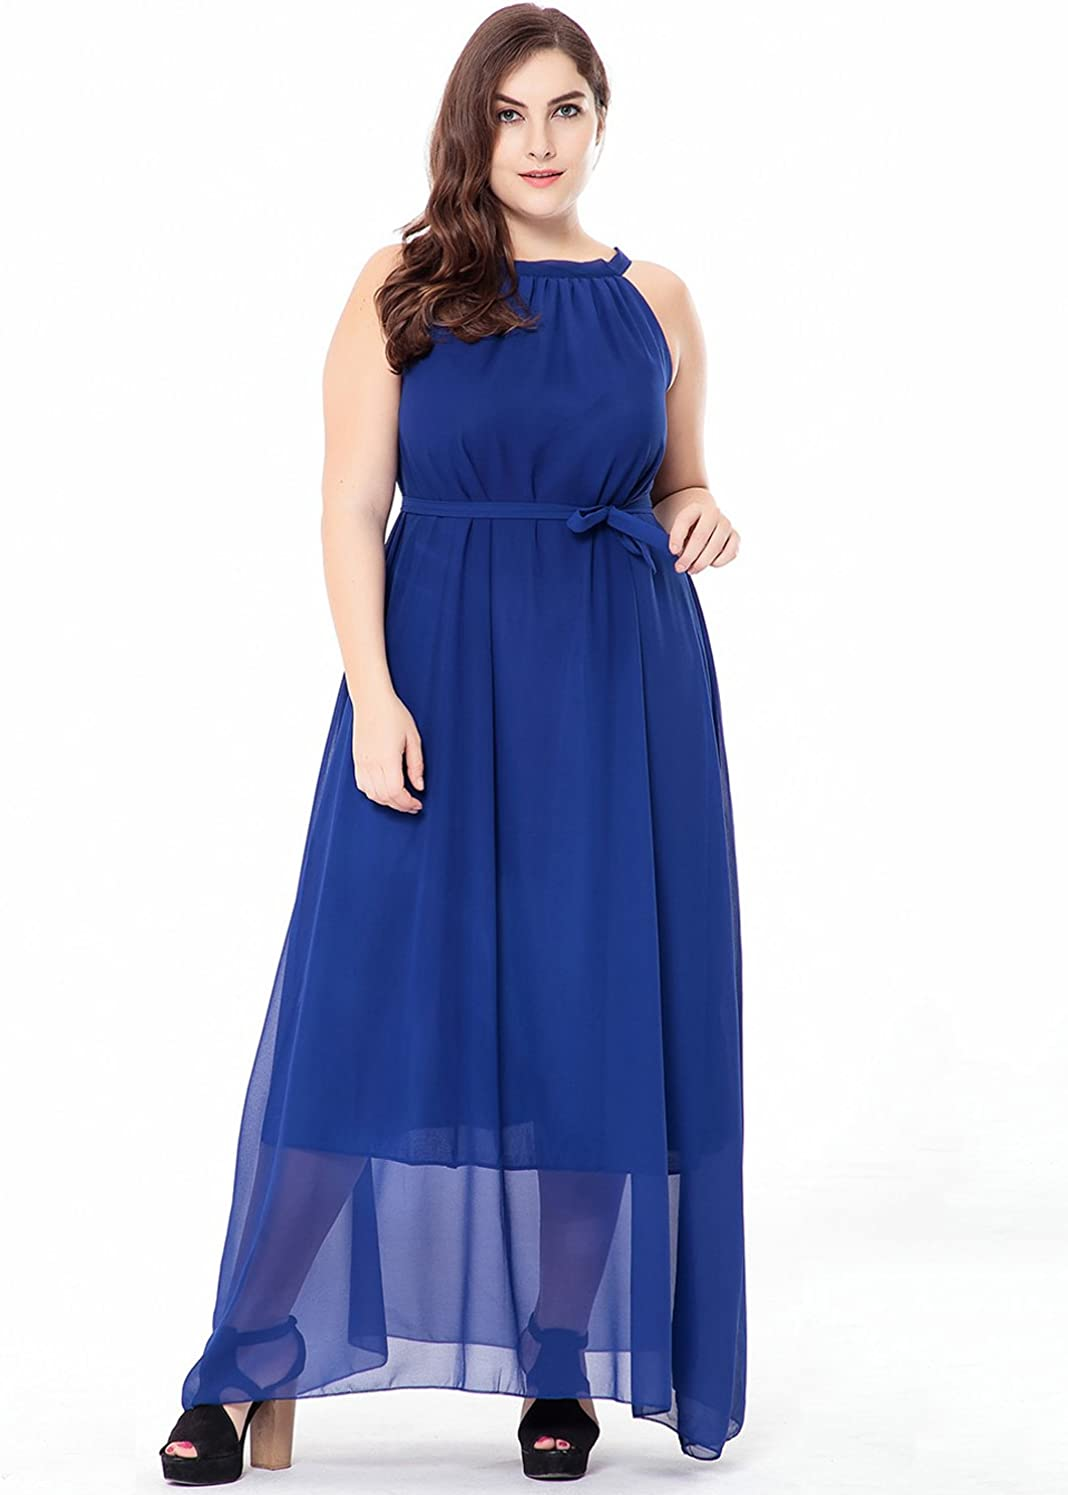 Fashionmall Womens Plus Size Halter Neck Sleeveless Solid Color Chiffon Maxi Dress